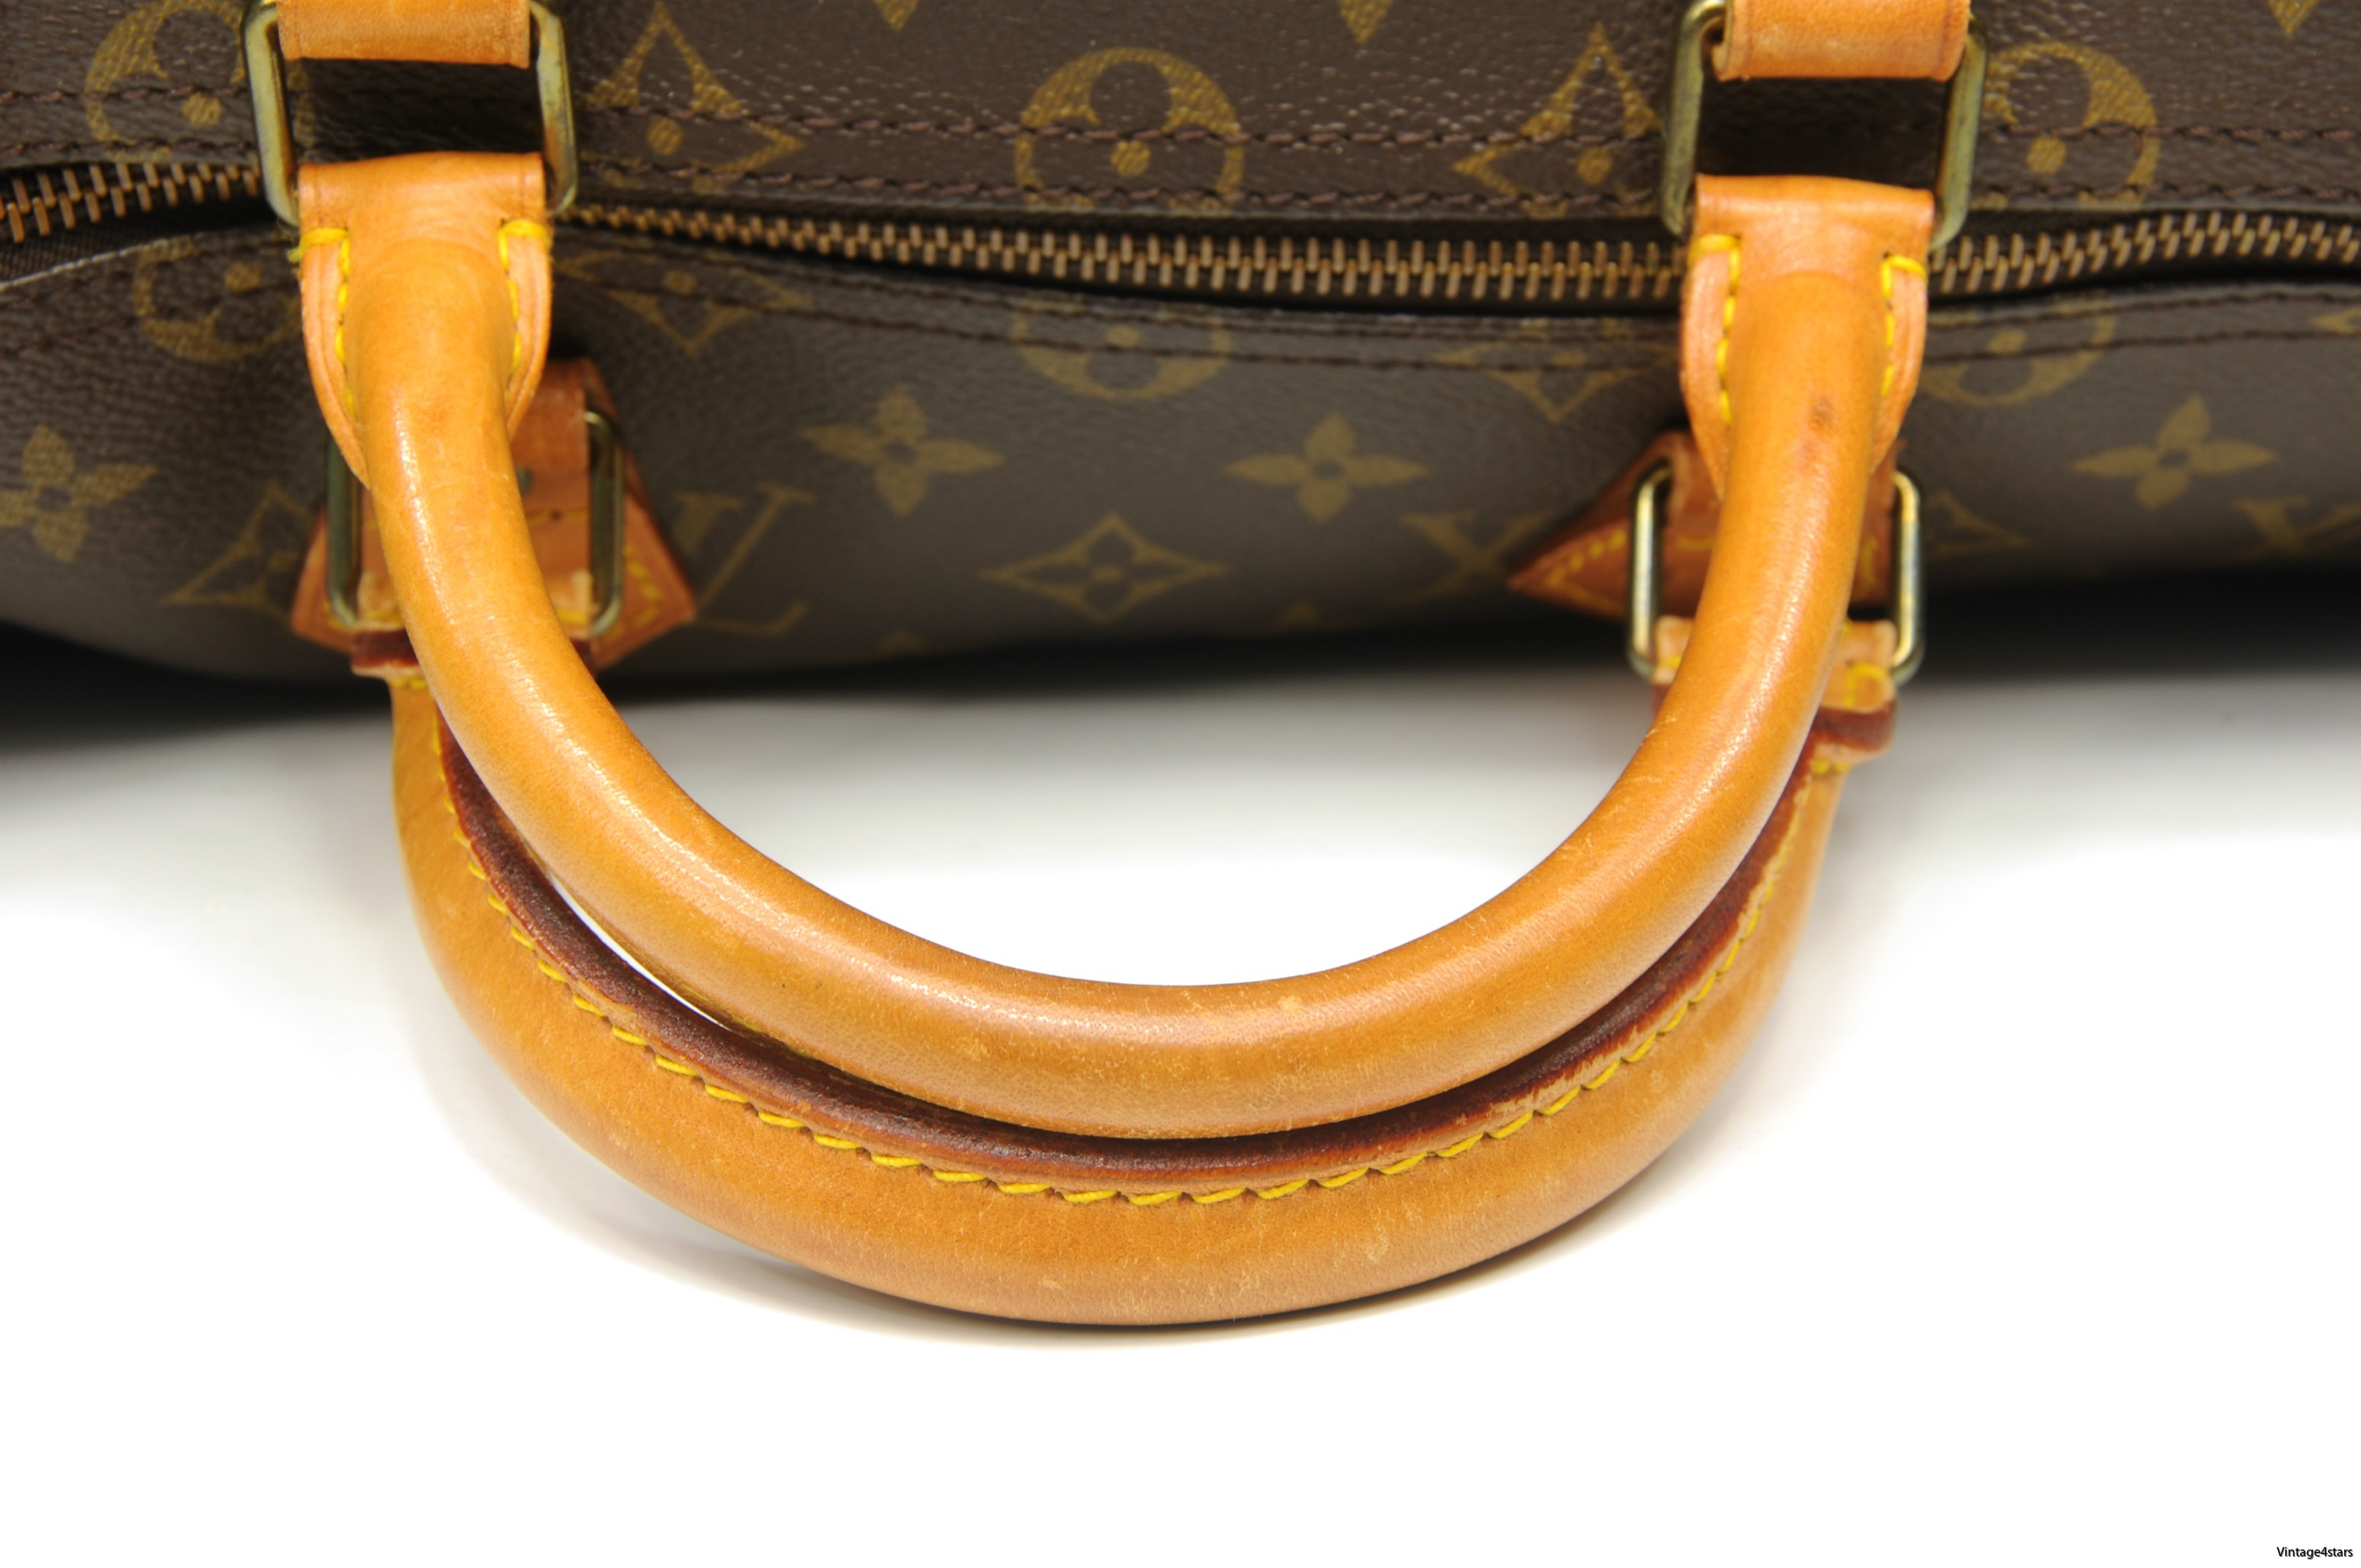 Louis Vuitton Speedy 35 Monogram 5